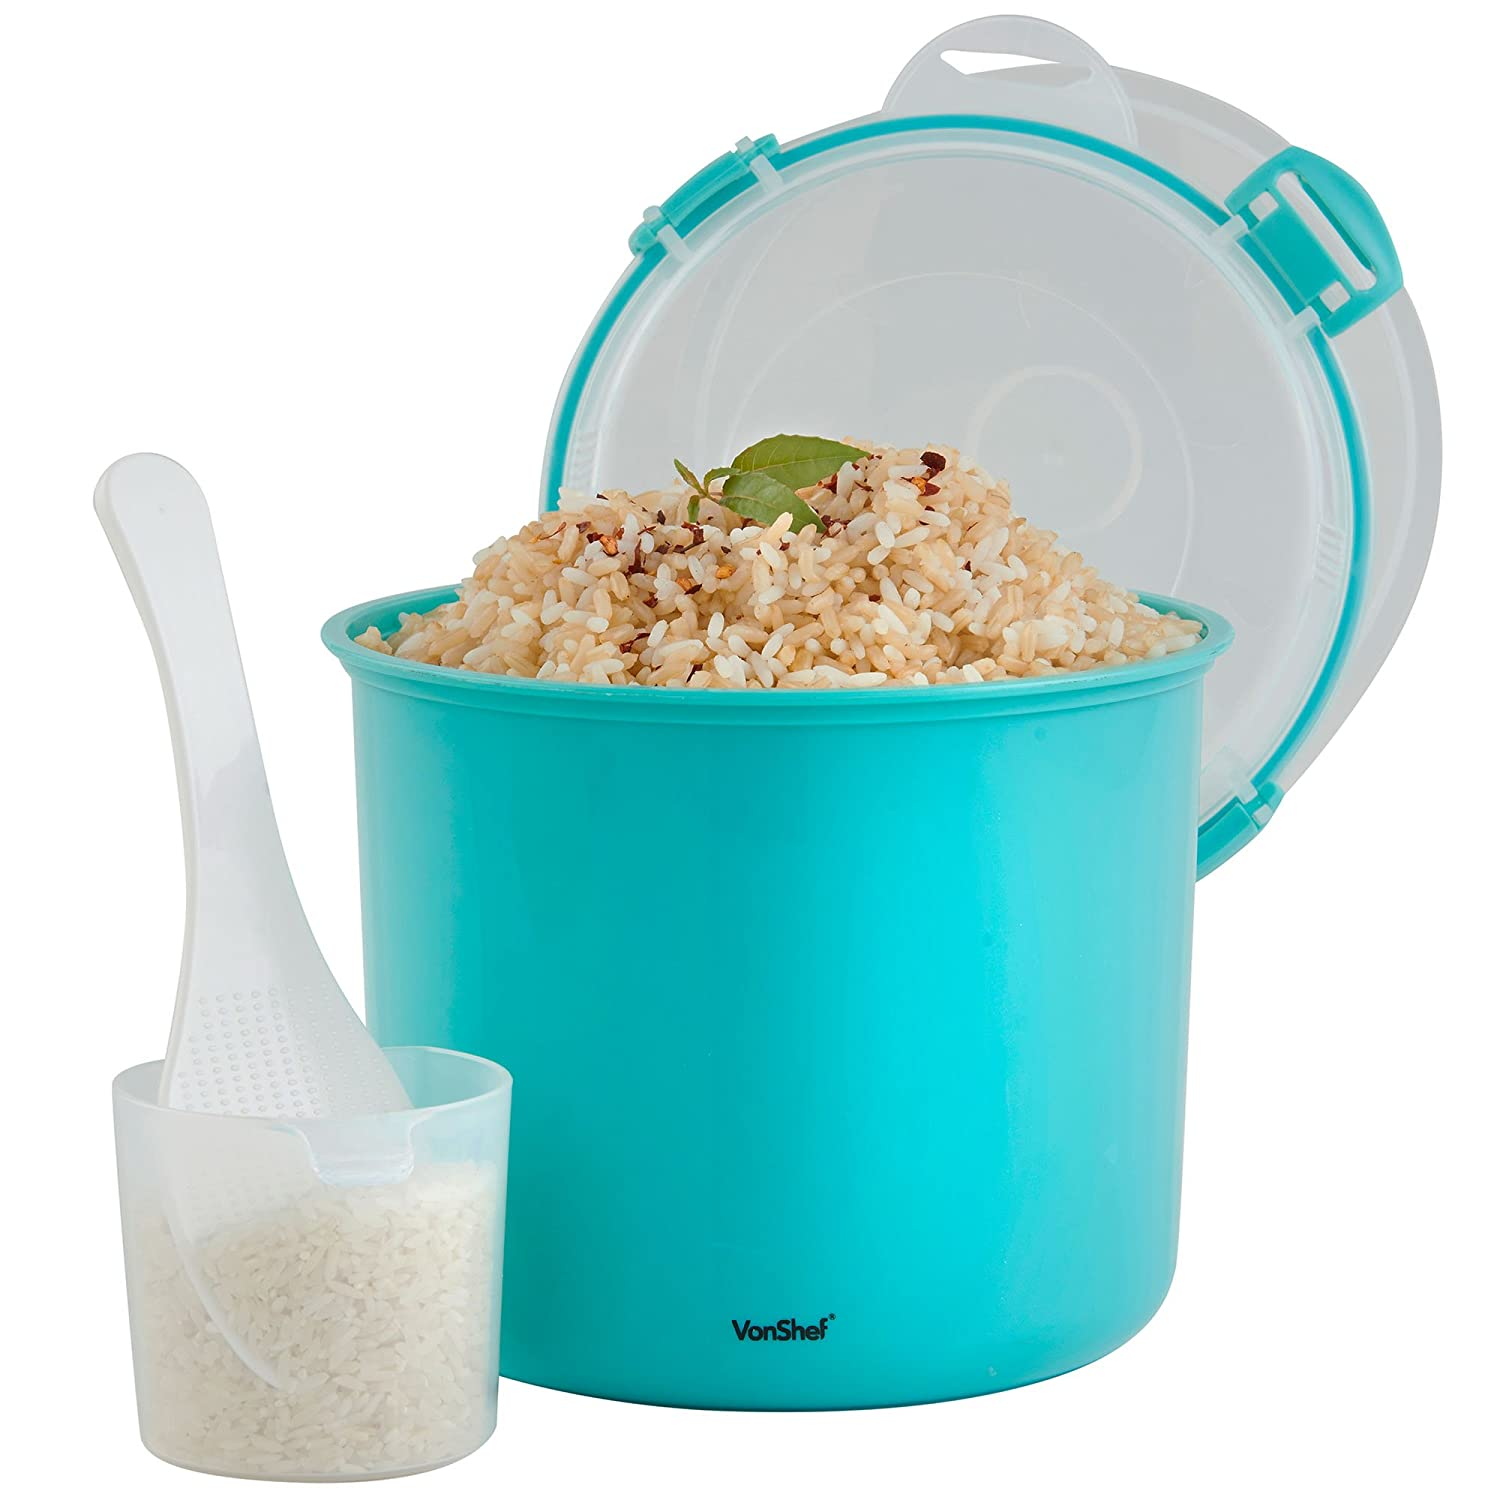 VonShef Microwave Rice Cooker.